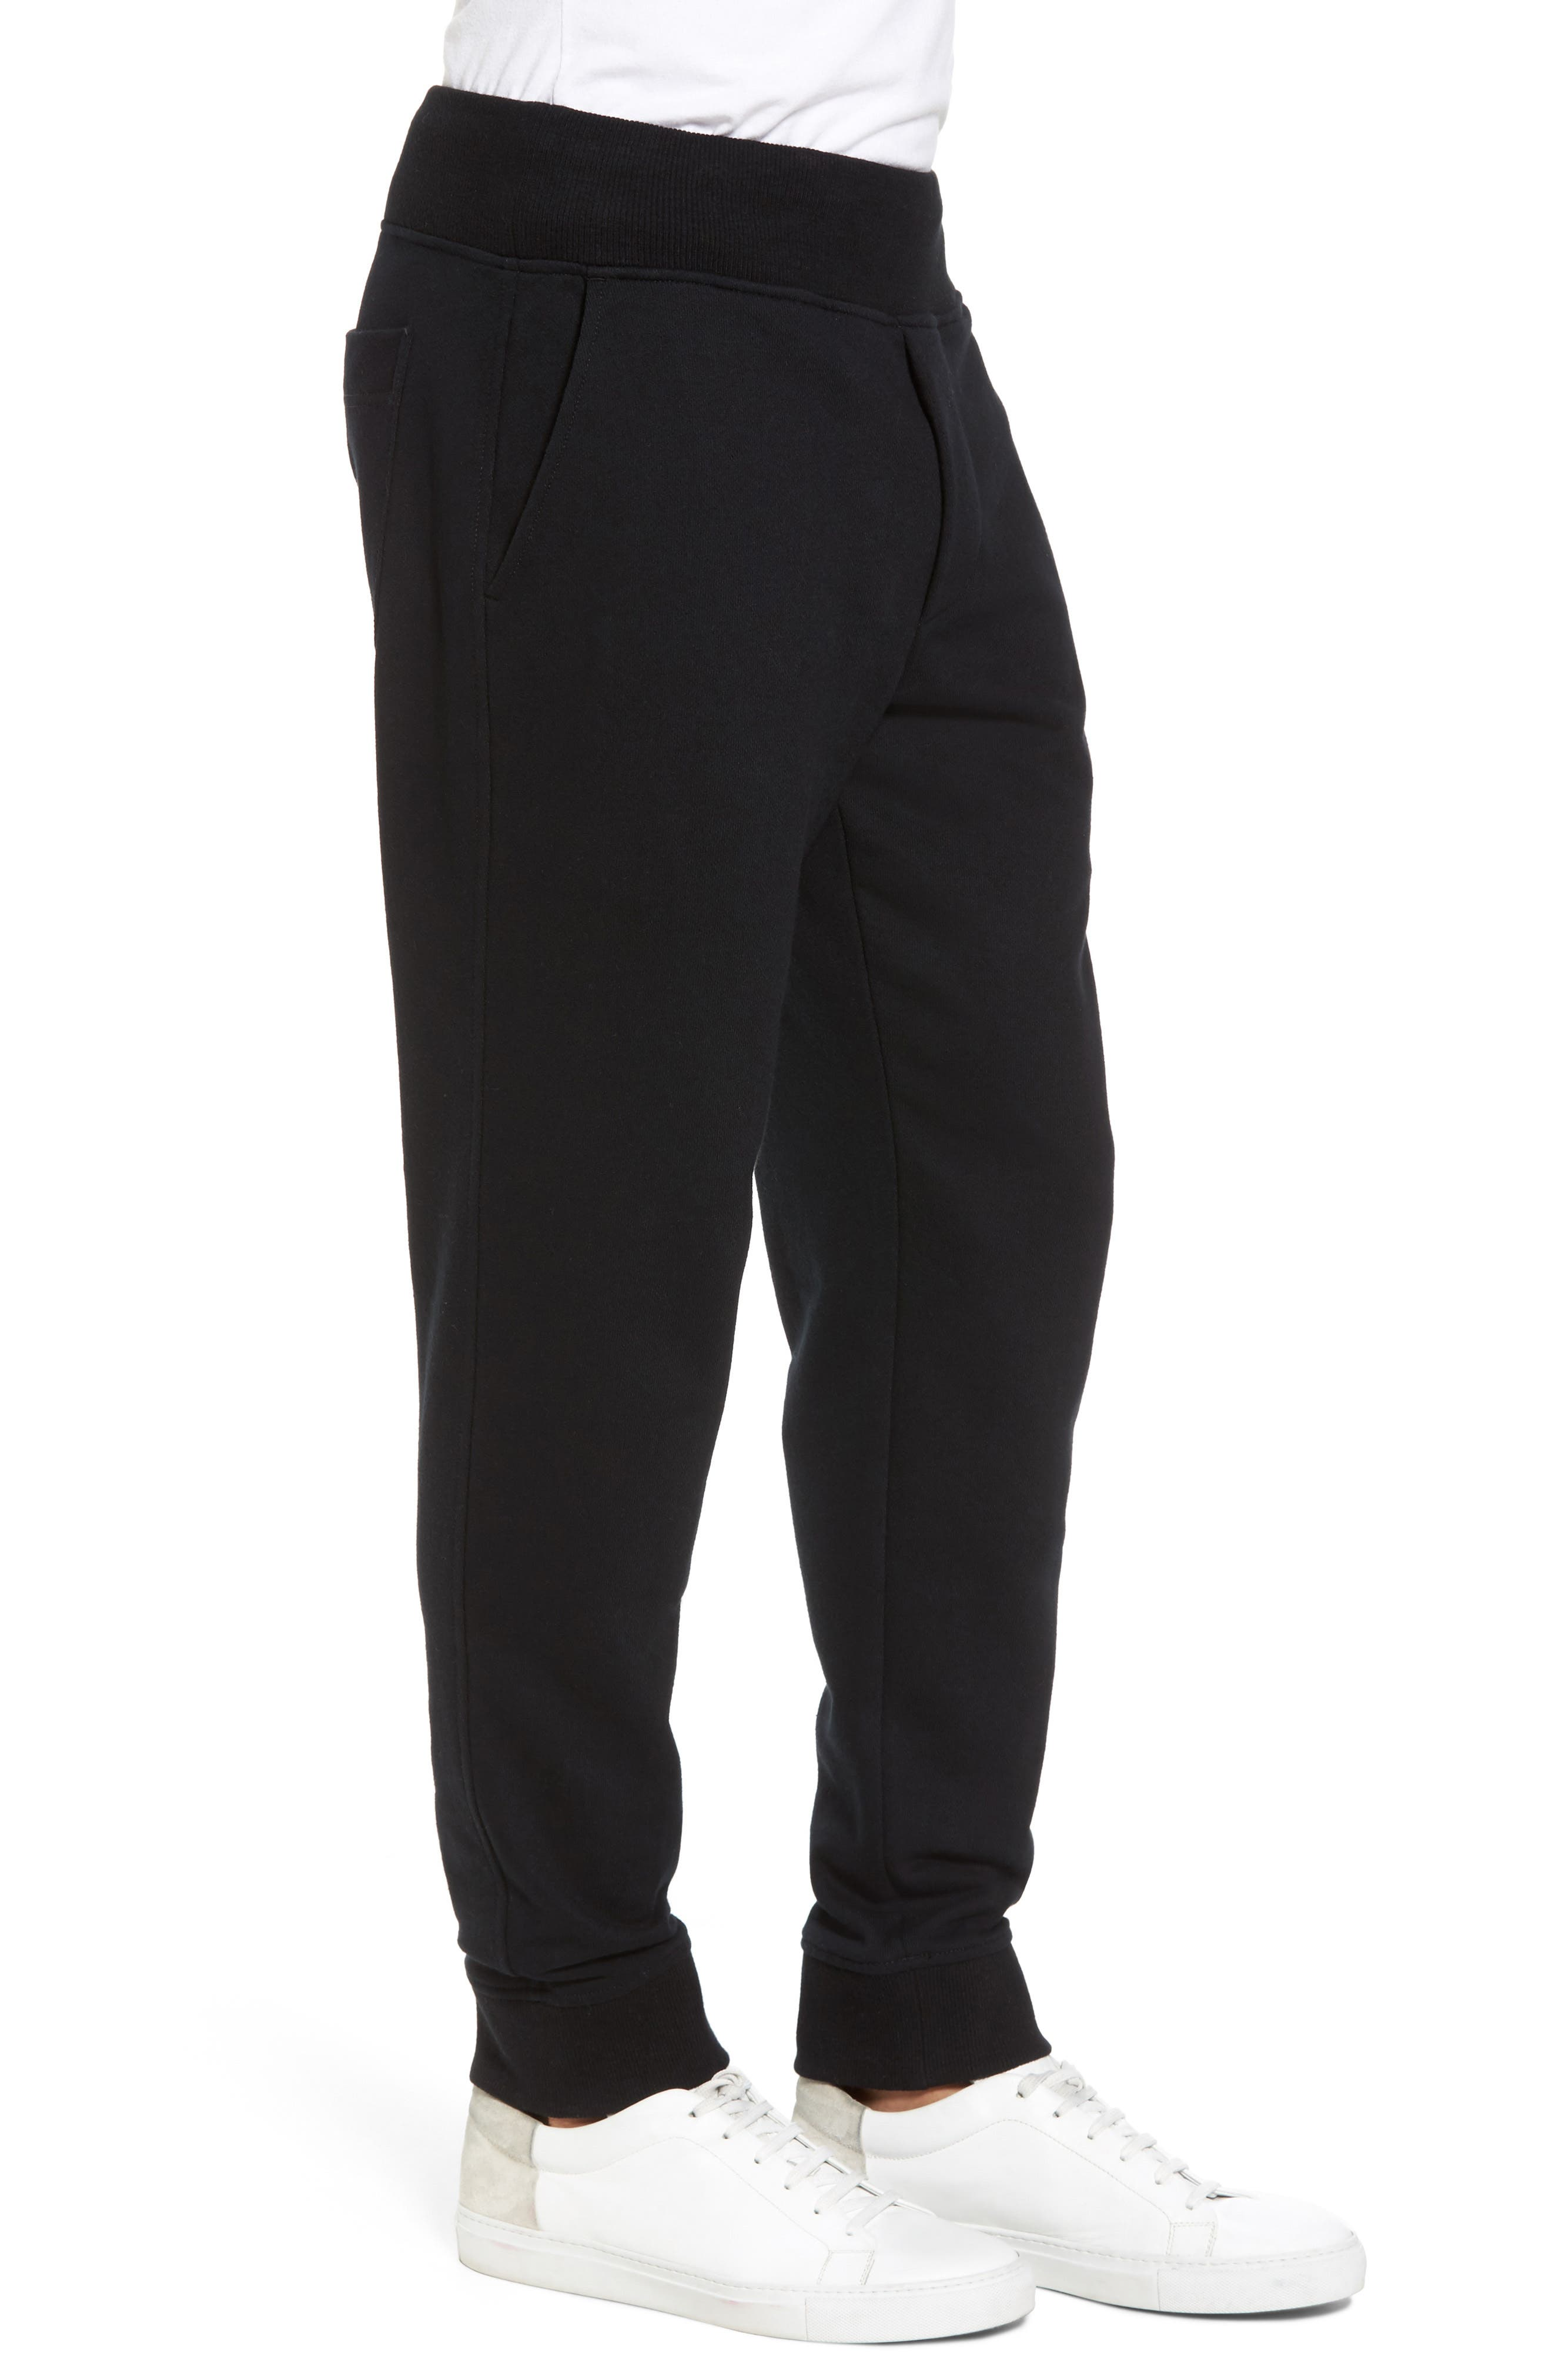 French Terry Regular Fit Sweatpants,                             Alternate thumbnail 3, color,                             Black